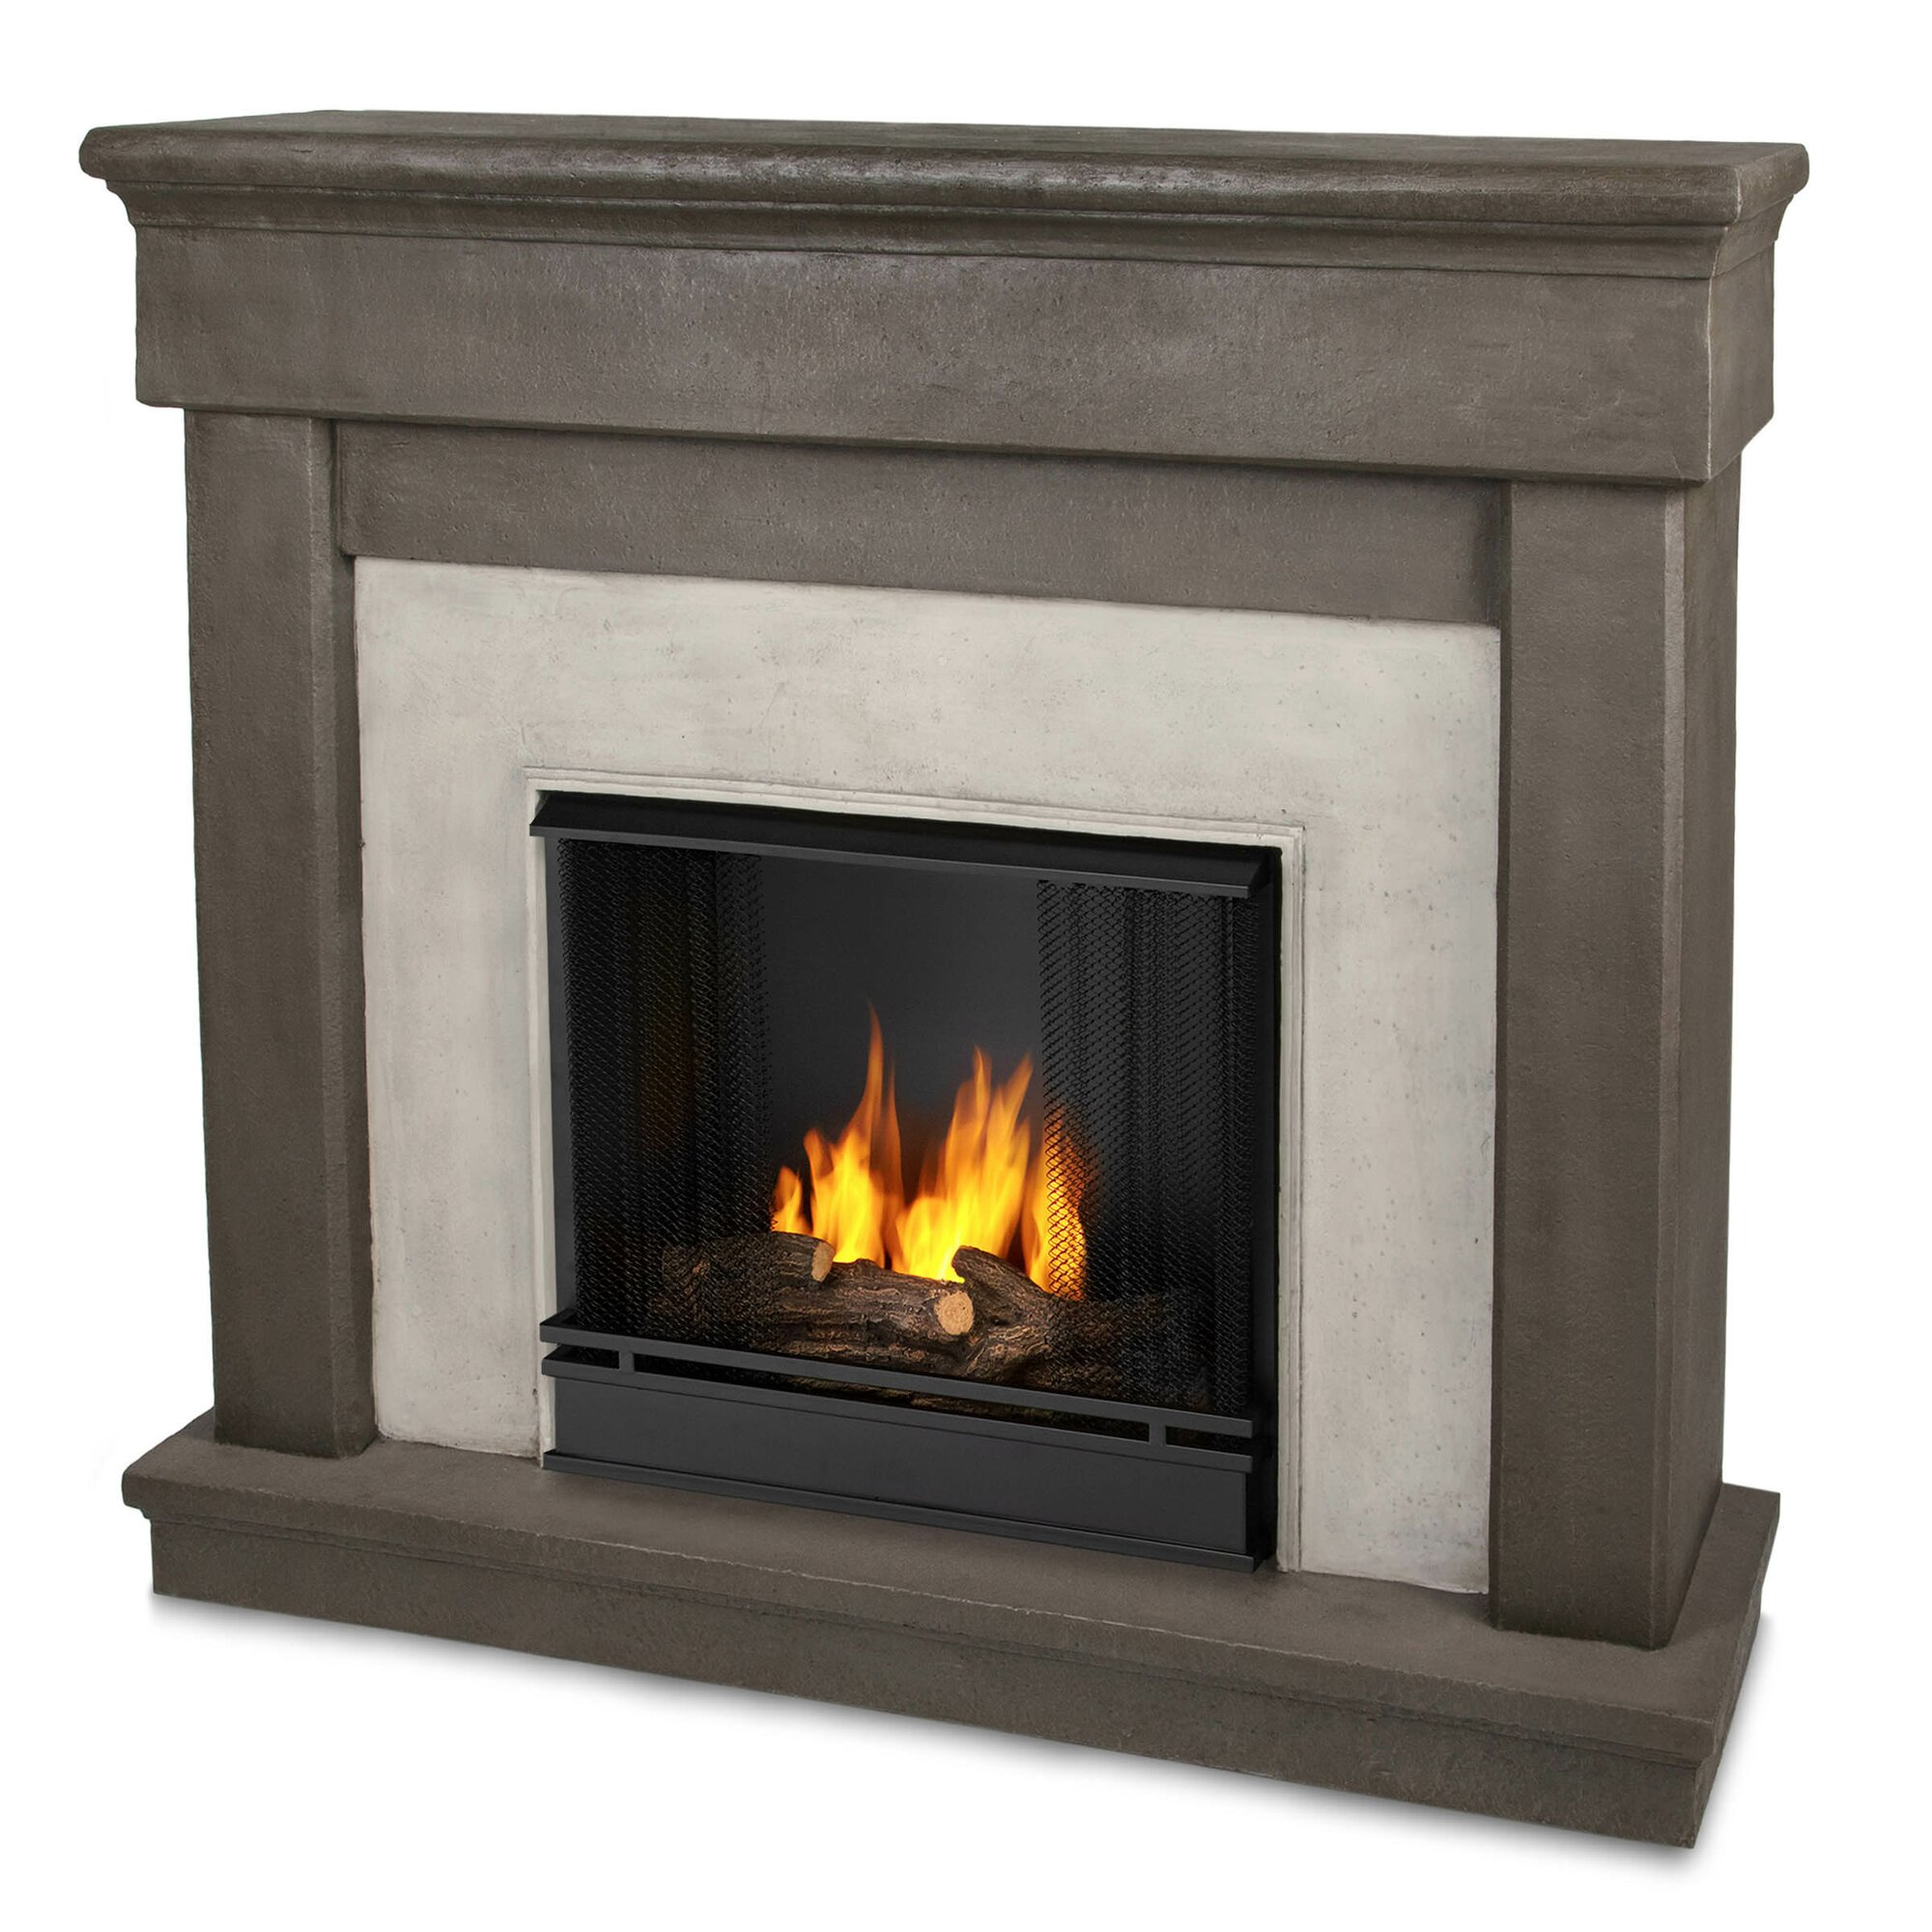 real flame cast mantel cascade wall mount gel fuel fireplace reviews wayfair. Black Bedroom Furniture Sets. Home Design Ideas